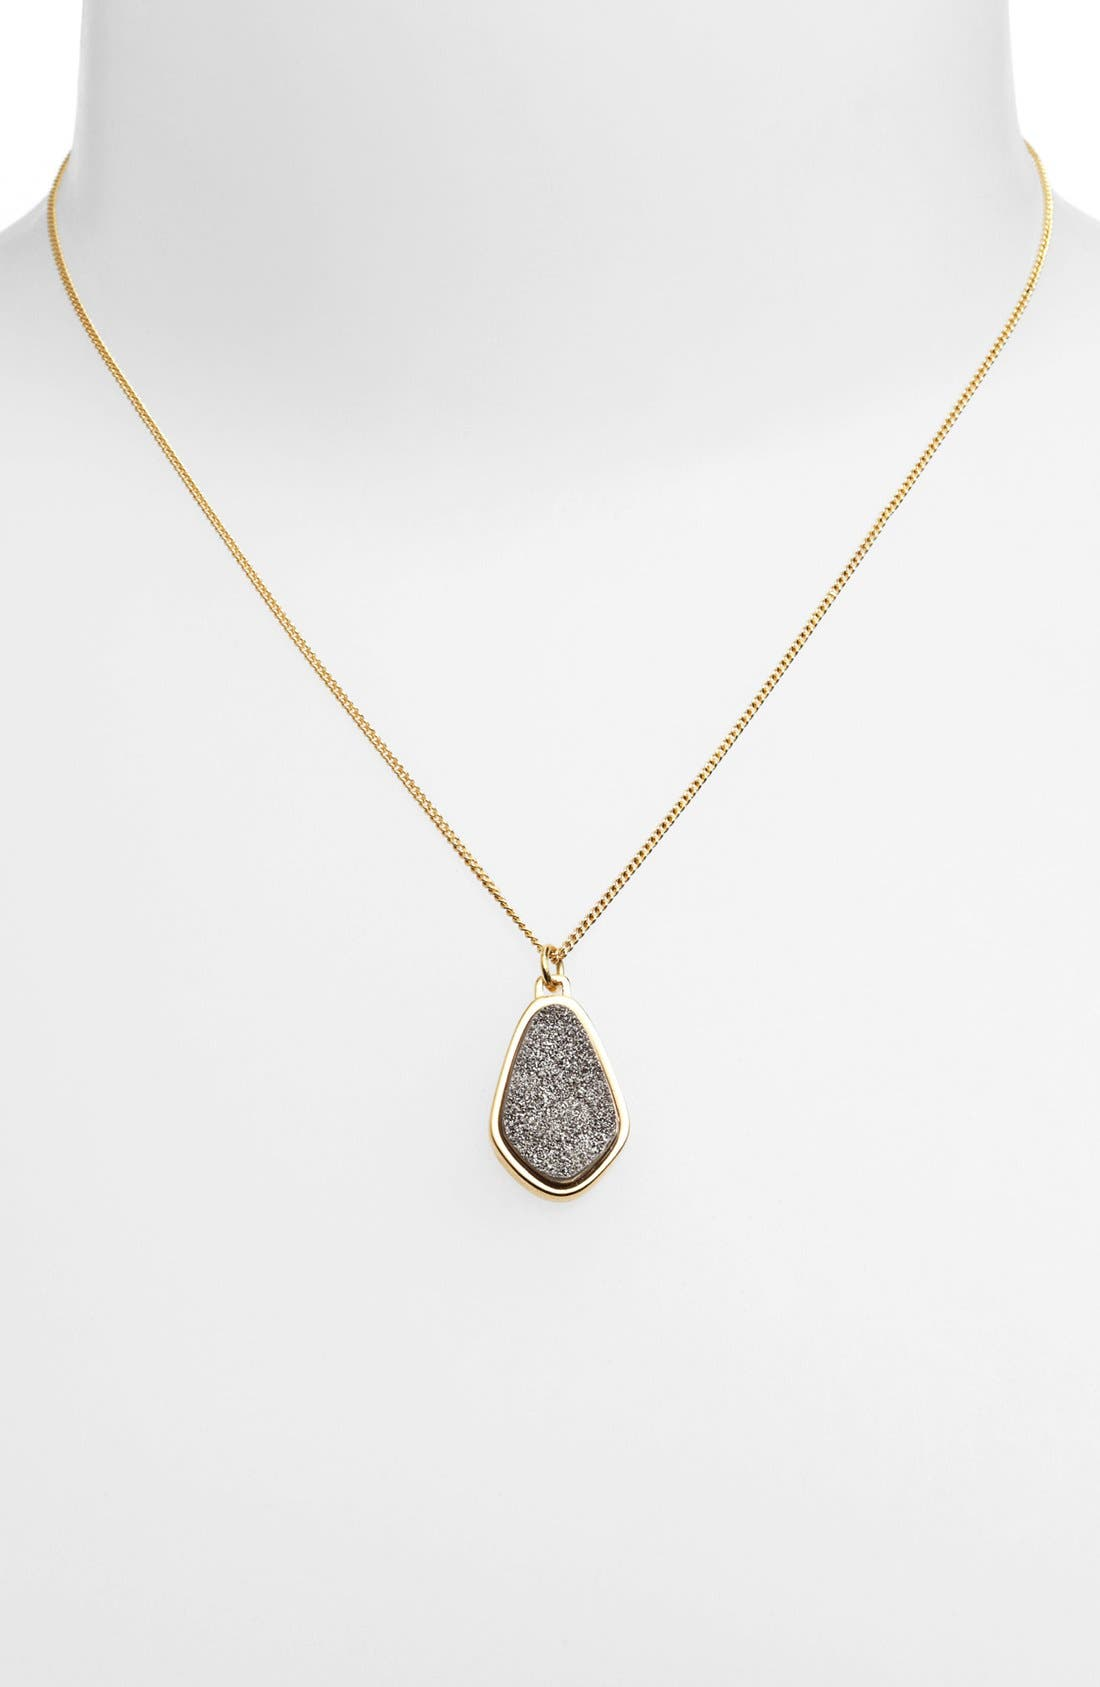 Alternate Image 1 Selected - Marcia Moran Organic Shape Pendant Necklace (Online Only)